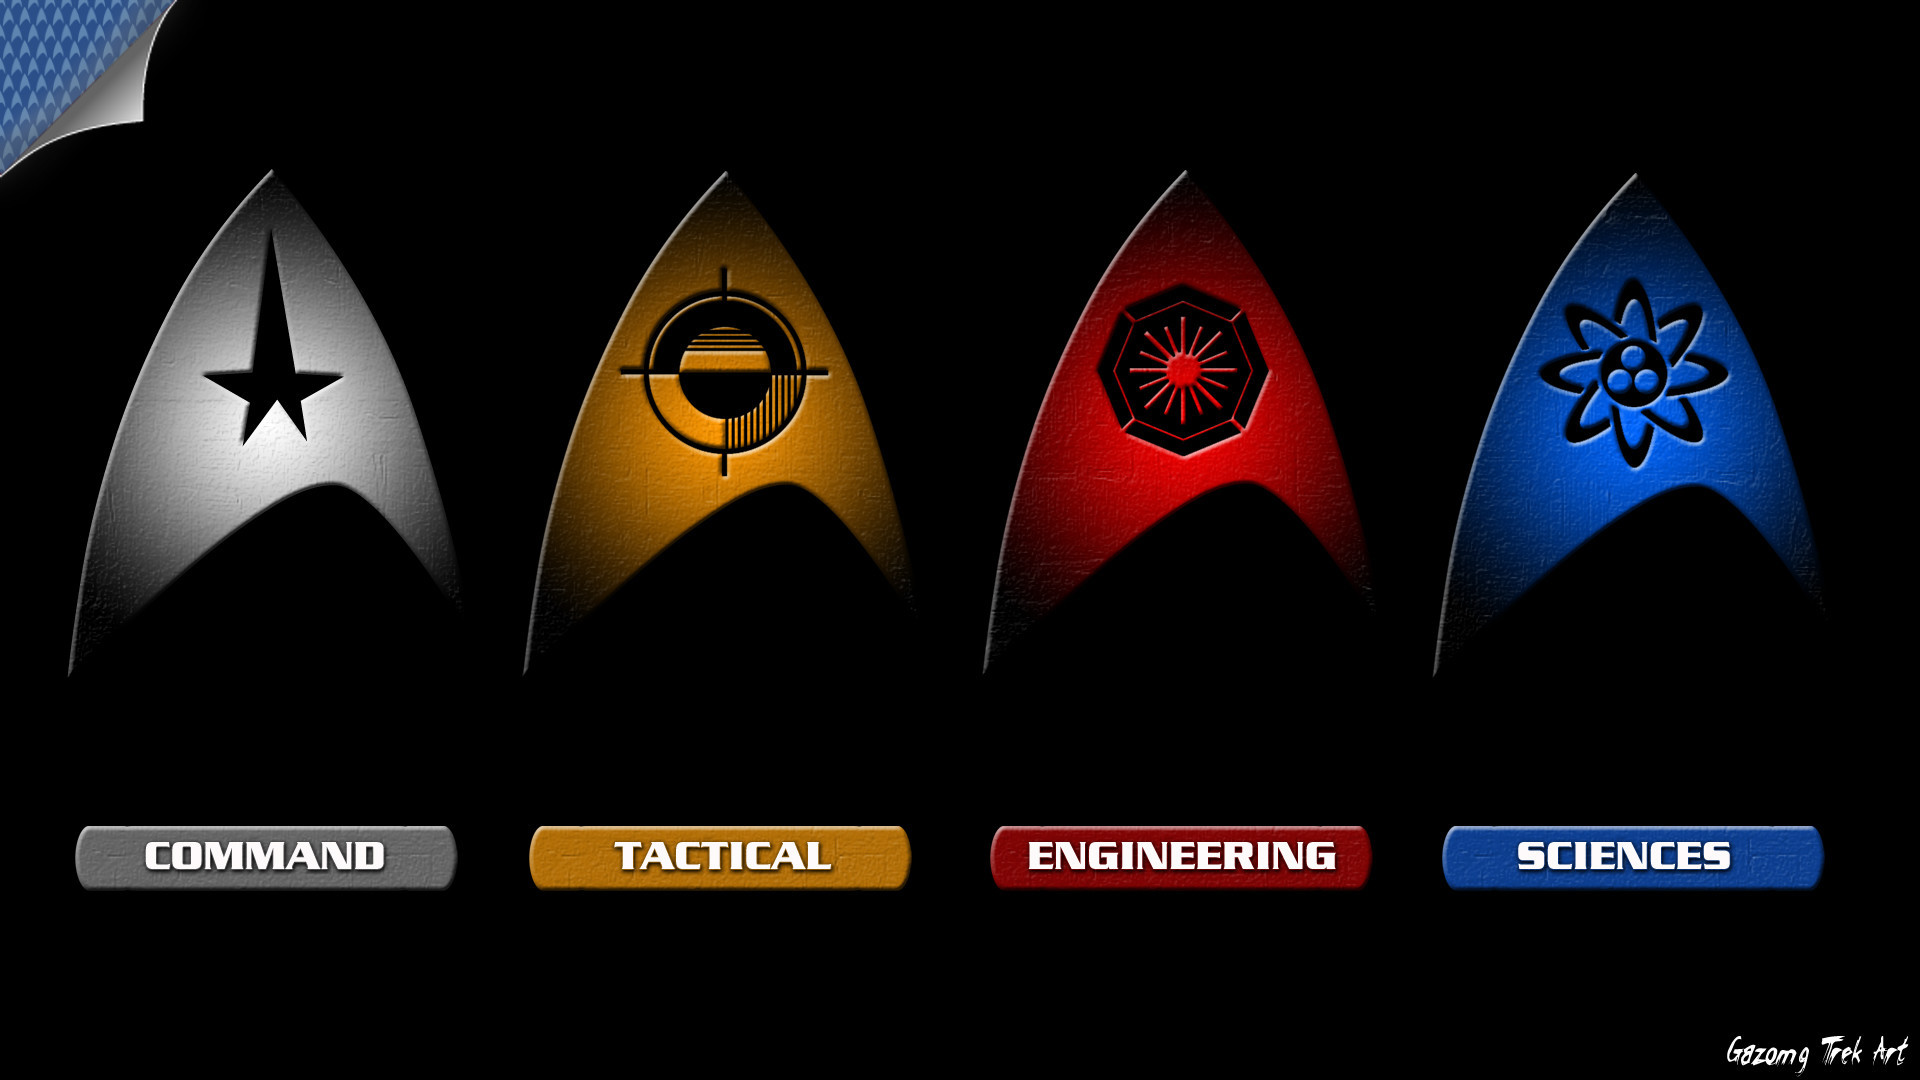 Res: 1920x1080, Star Trek Starfleet Departmemt logos by gazomg